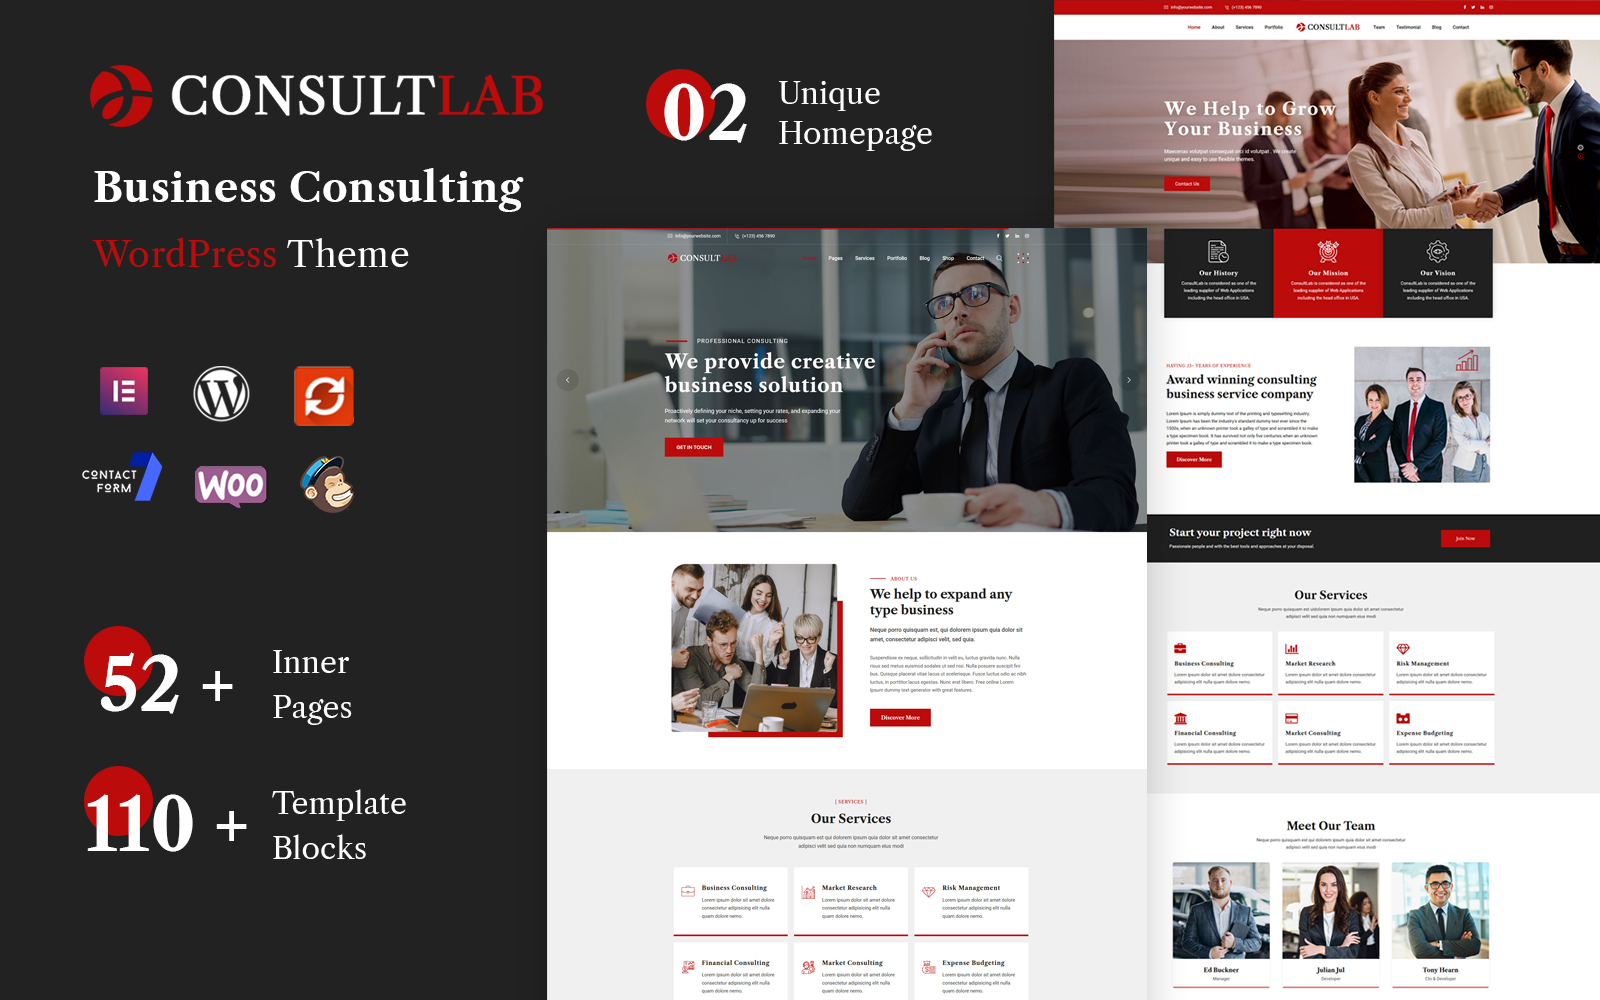 Consultlab - Business Consulting WordPress Theme